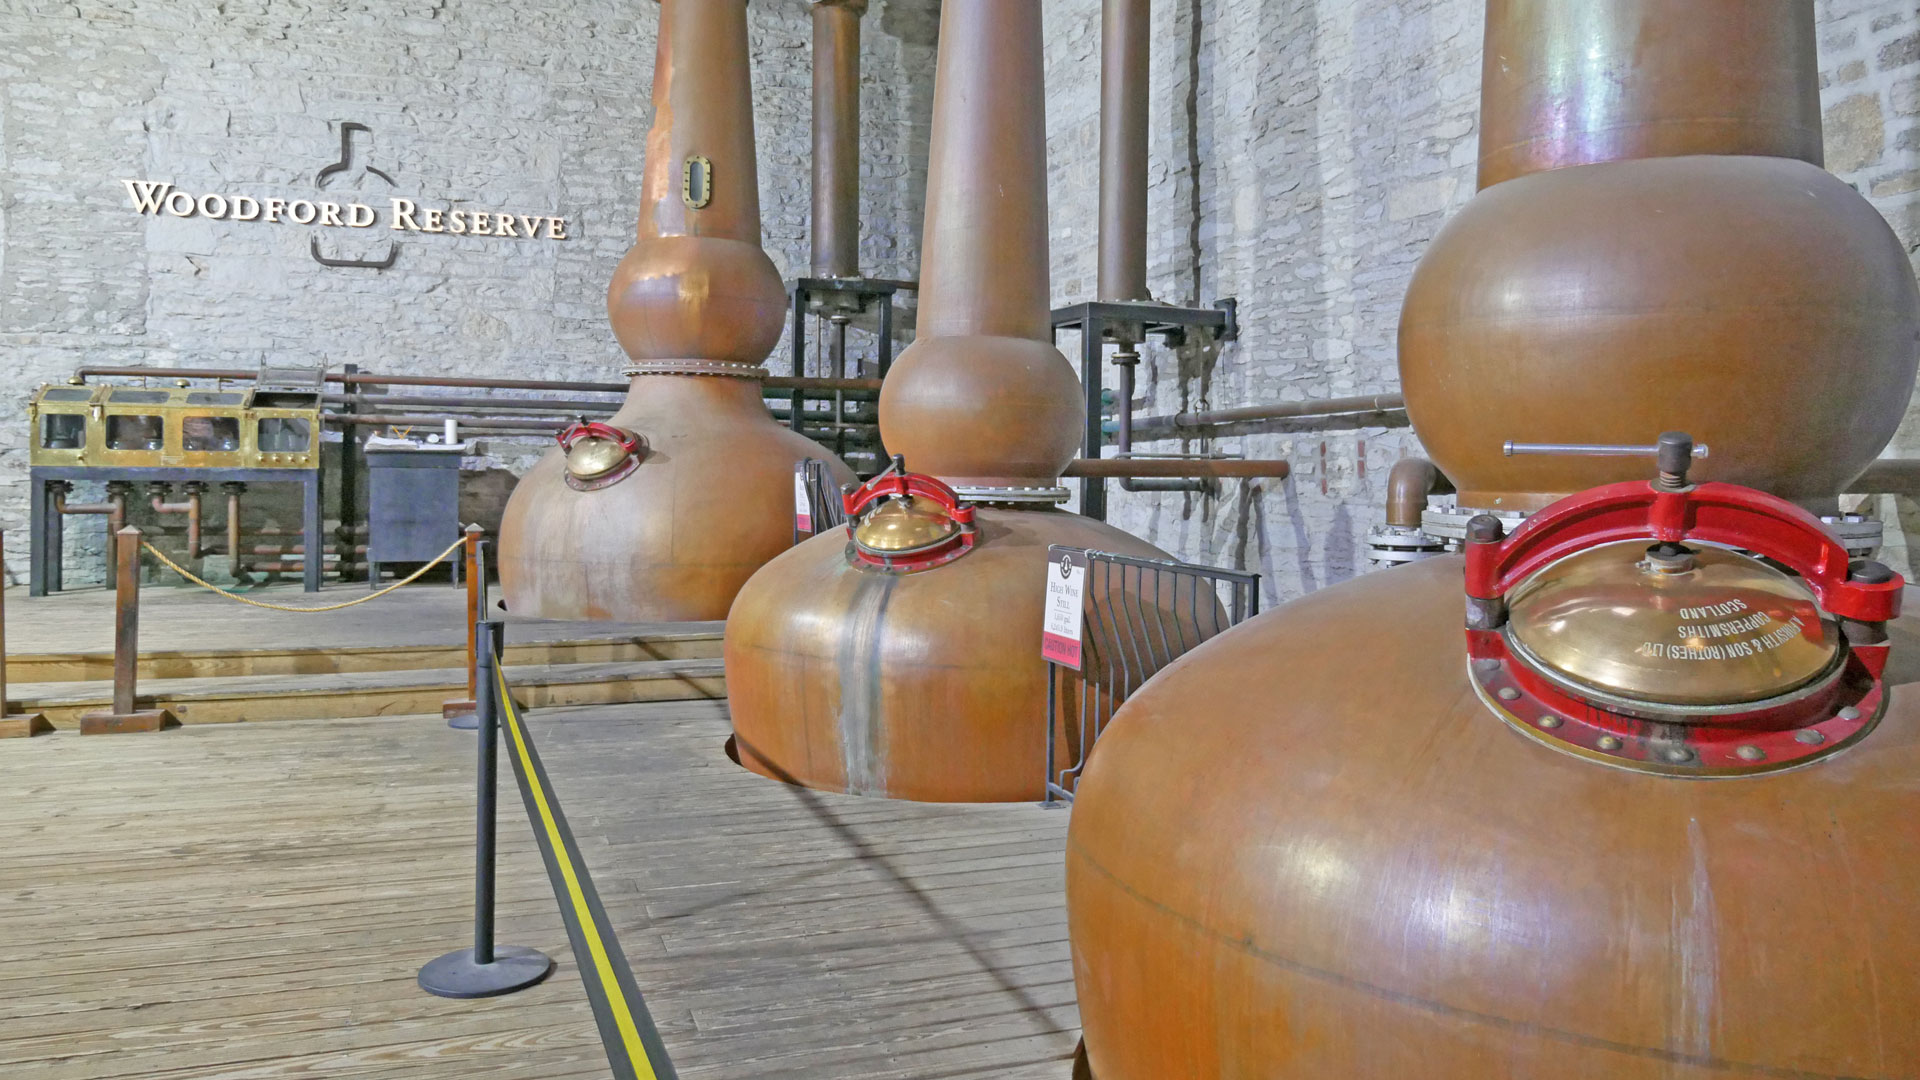 Pott Stills in der Woodford Reserve Distillery. (Foto: Malt Whisky)